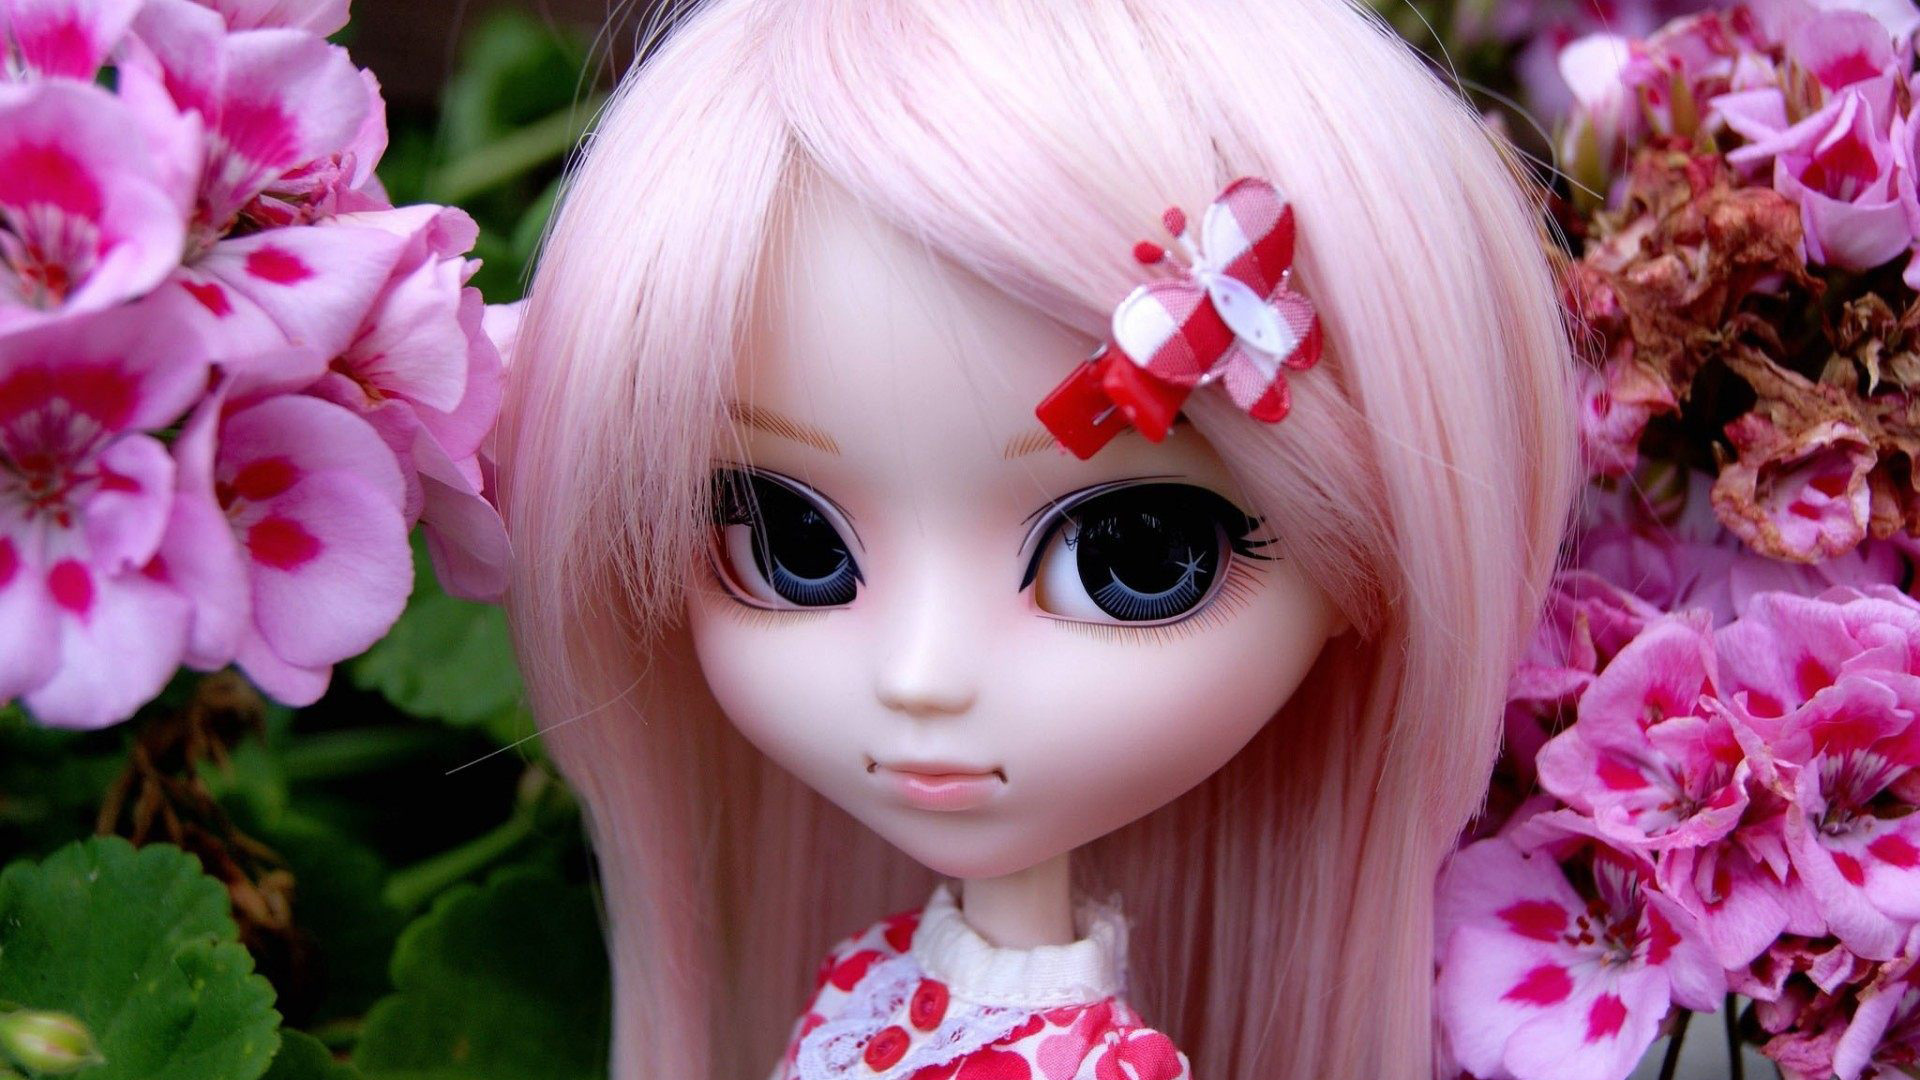 Cute doll face for girly wallpapers hd wallpapers wallpapers download high resolution - Love doll hd wallpaper download ...